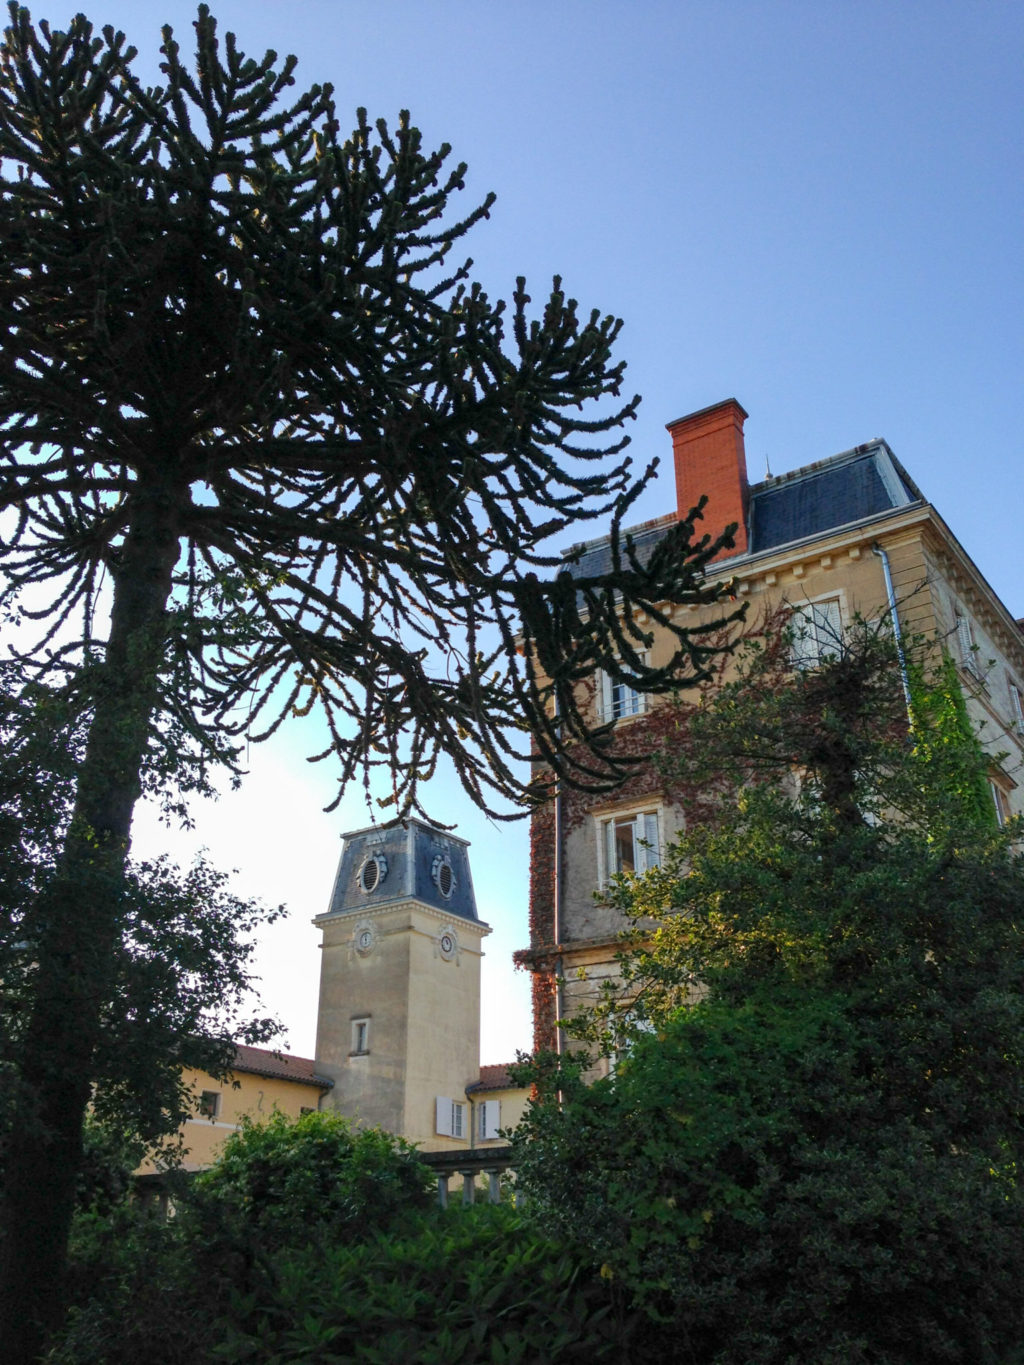 Château de Bellevue. Photo by Gloria J. Chang.